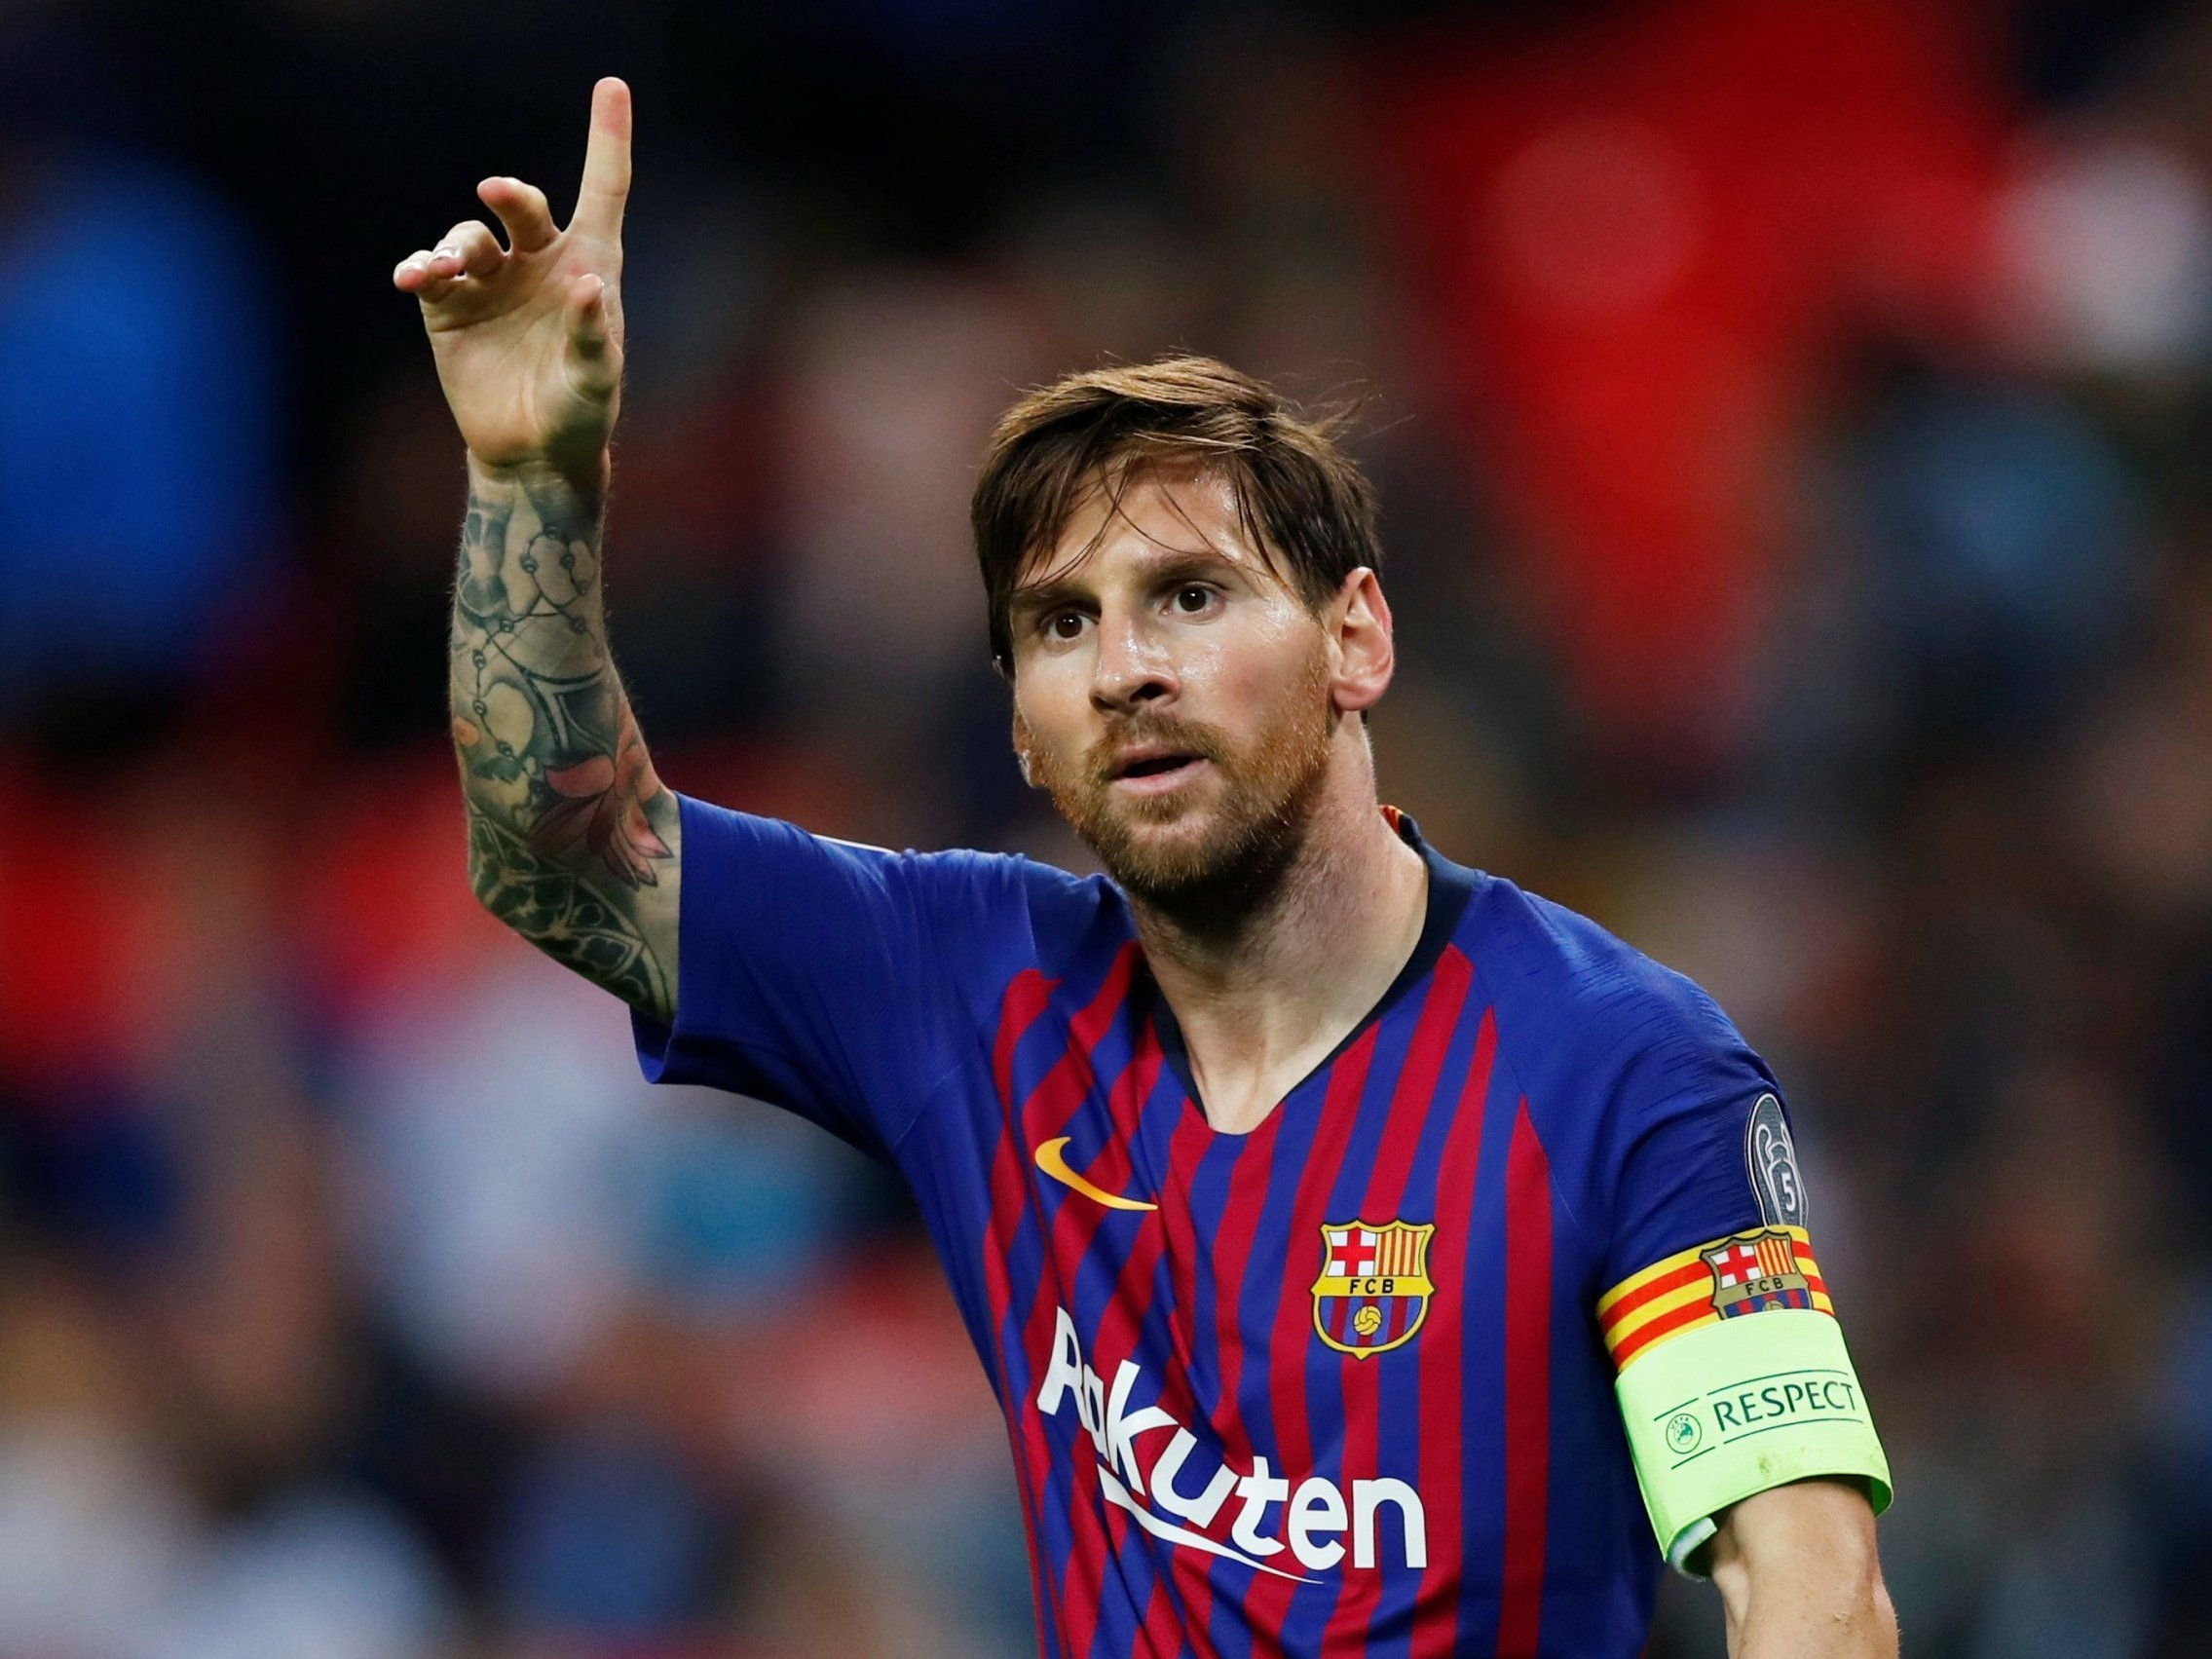 Lionel Messi calls for resuming search for missing Sala  |Lionel Messi